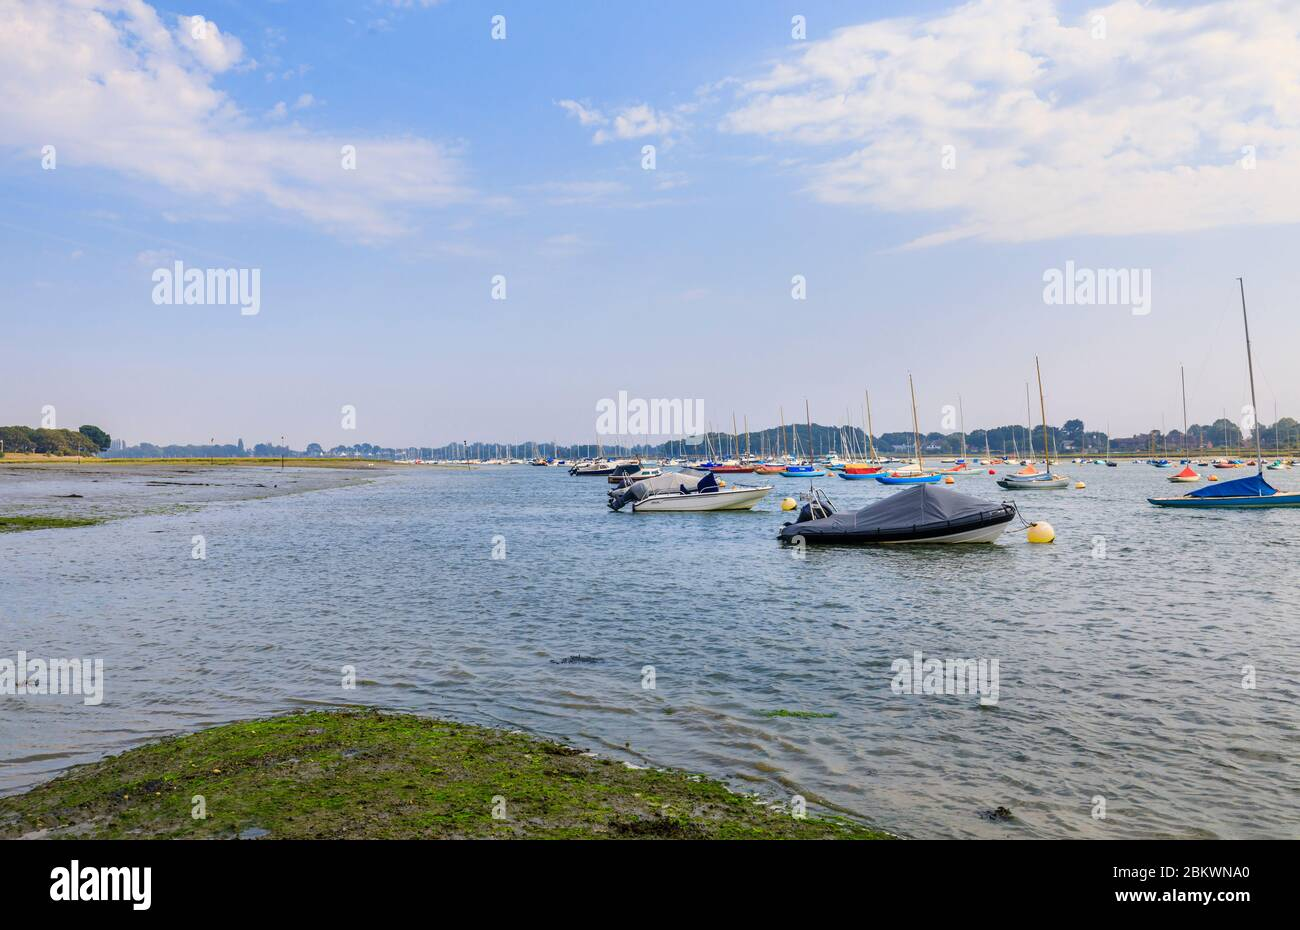 Sailing boats moored by the Smugglers Lane and Ferry Hard intertidal saltmarsh areas at low tide, Bosham, Chichester Harbour, south coast England Stock Photo